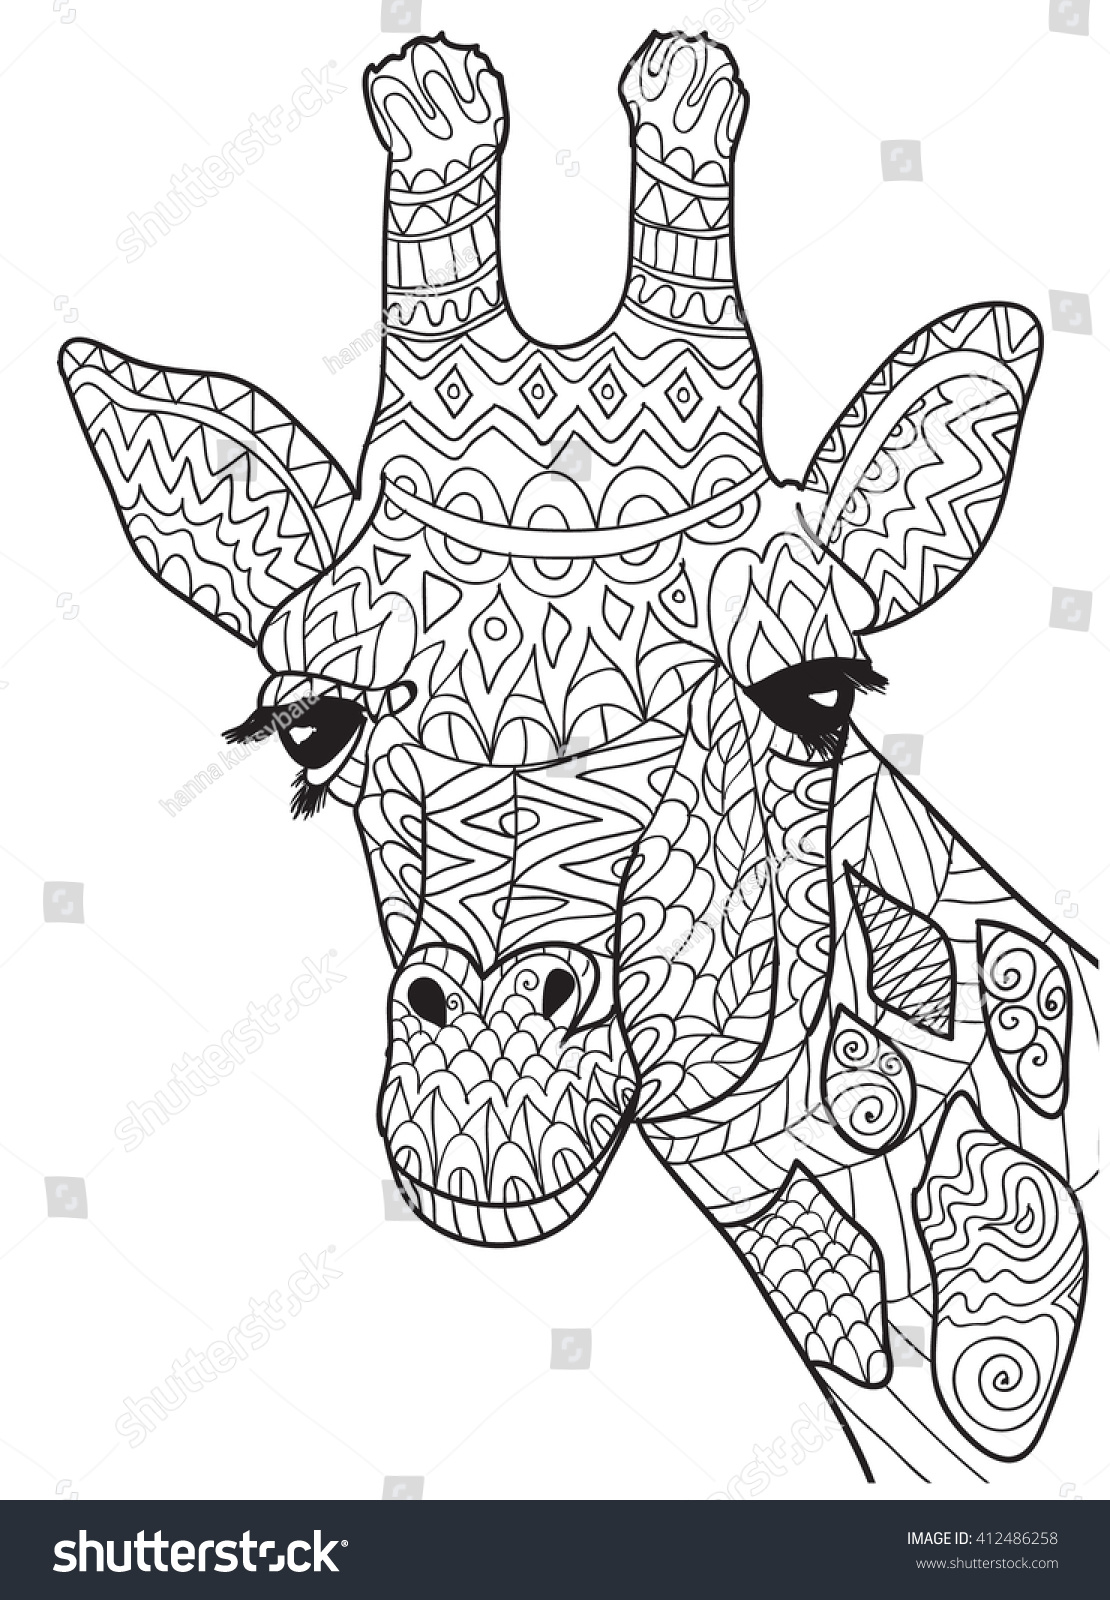 Hand Drawn Coloring Pages Giraffe Zentangle Stock Vector (Royalty ...